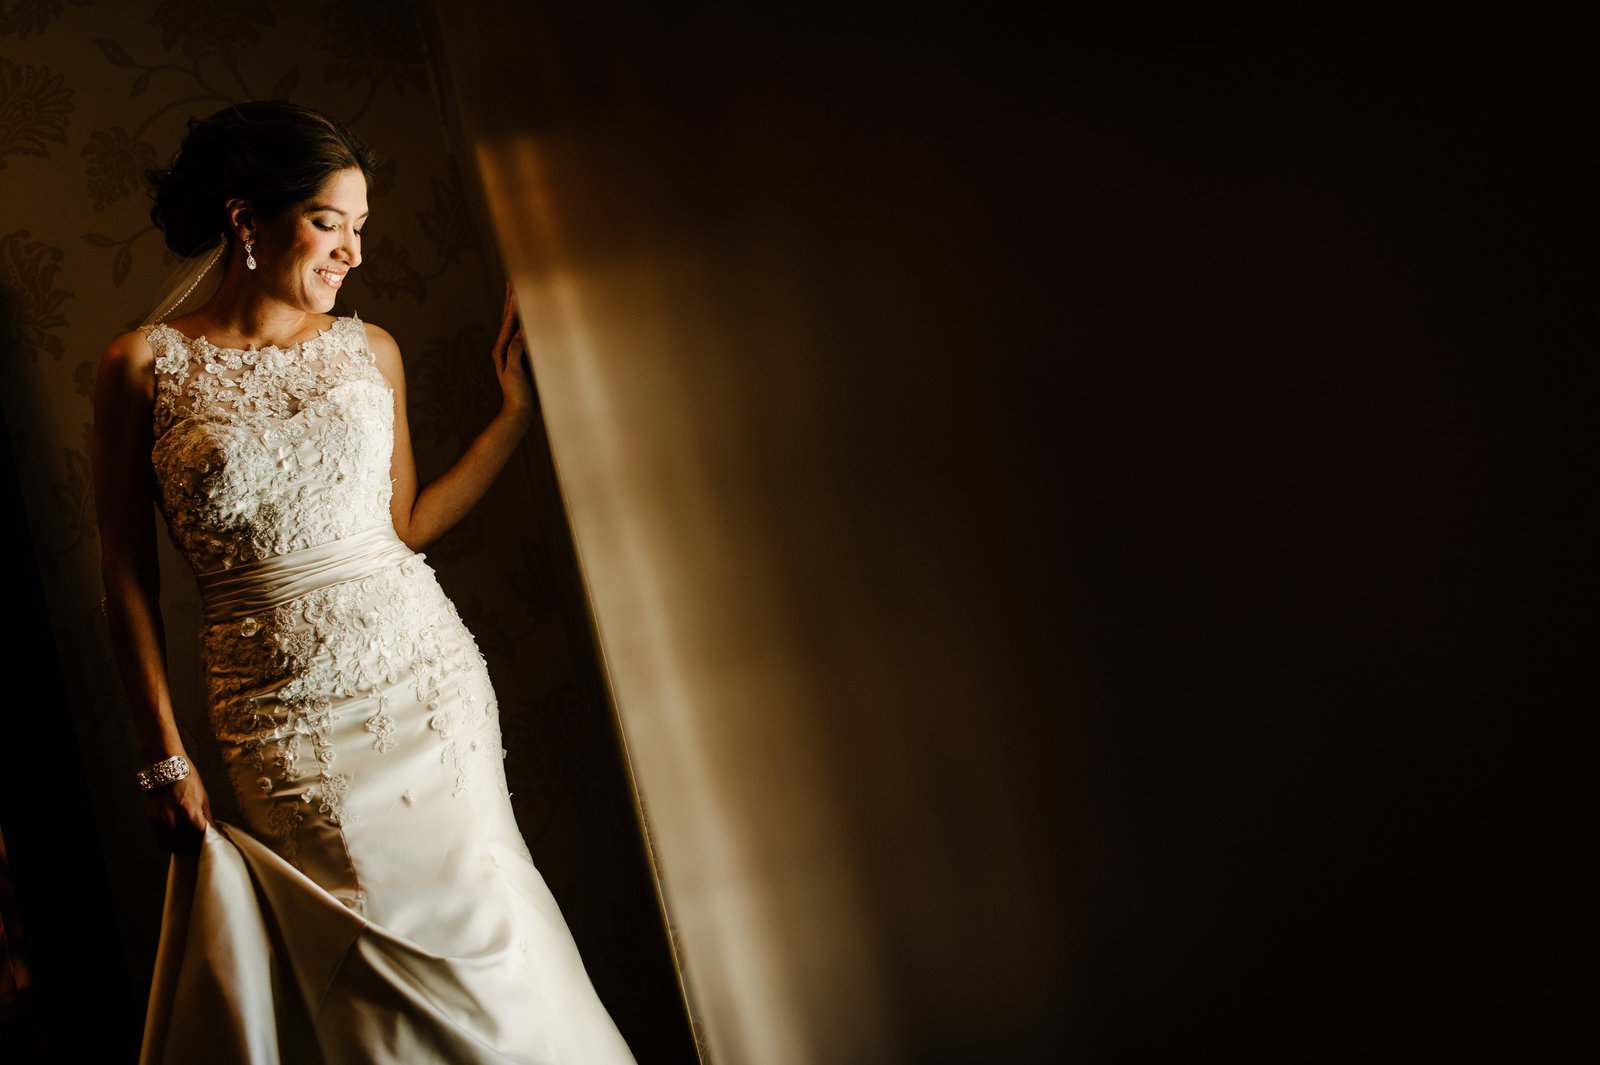 236-El-paso-wedding-photographer-El Paso Wedding Photographer_B01